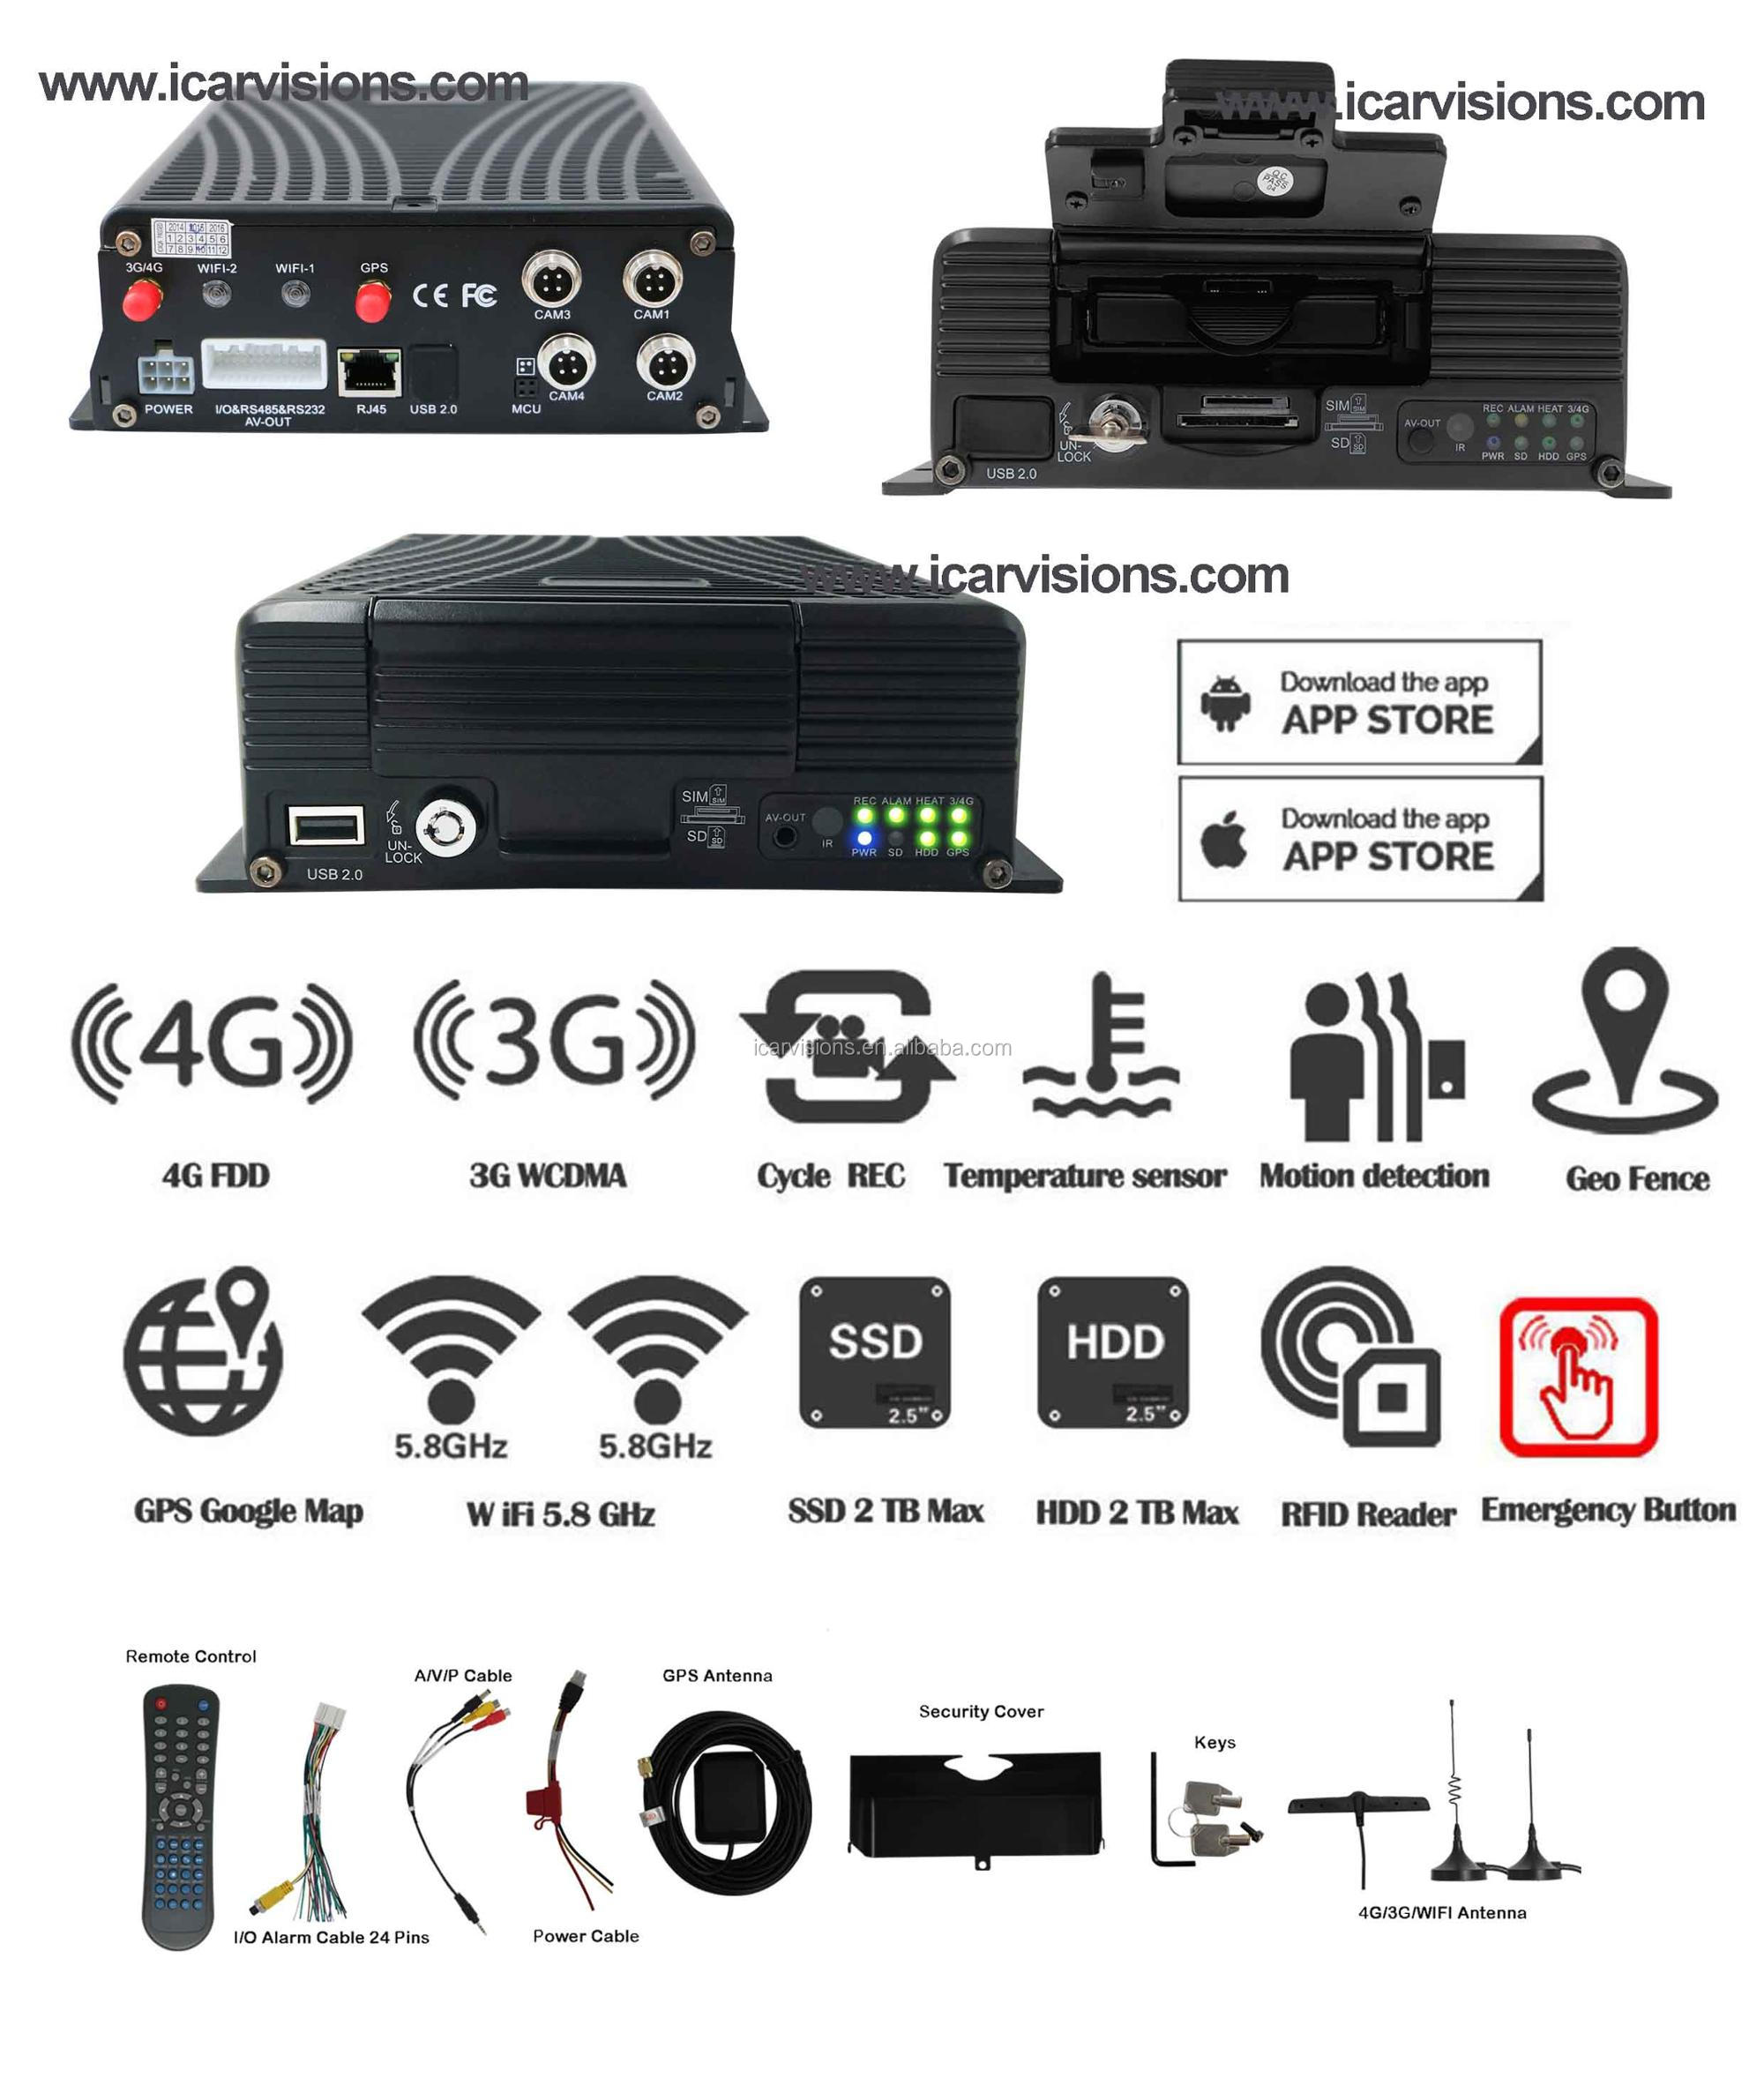 4 Channels High Definition Hard Disk Hikvision Mobile Dvr 3g Wifi Channel Remote View With Shock Sensor And Antenna Gprs Gps